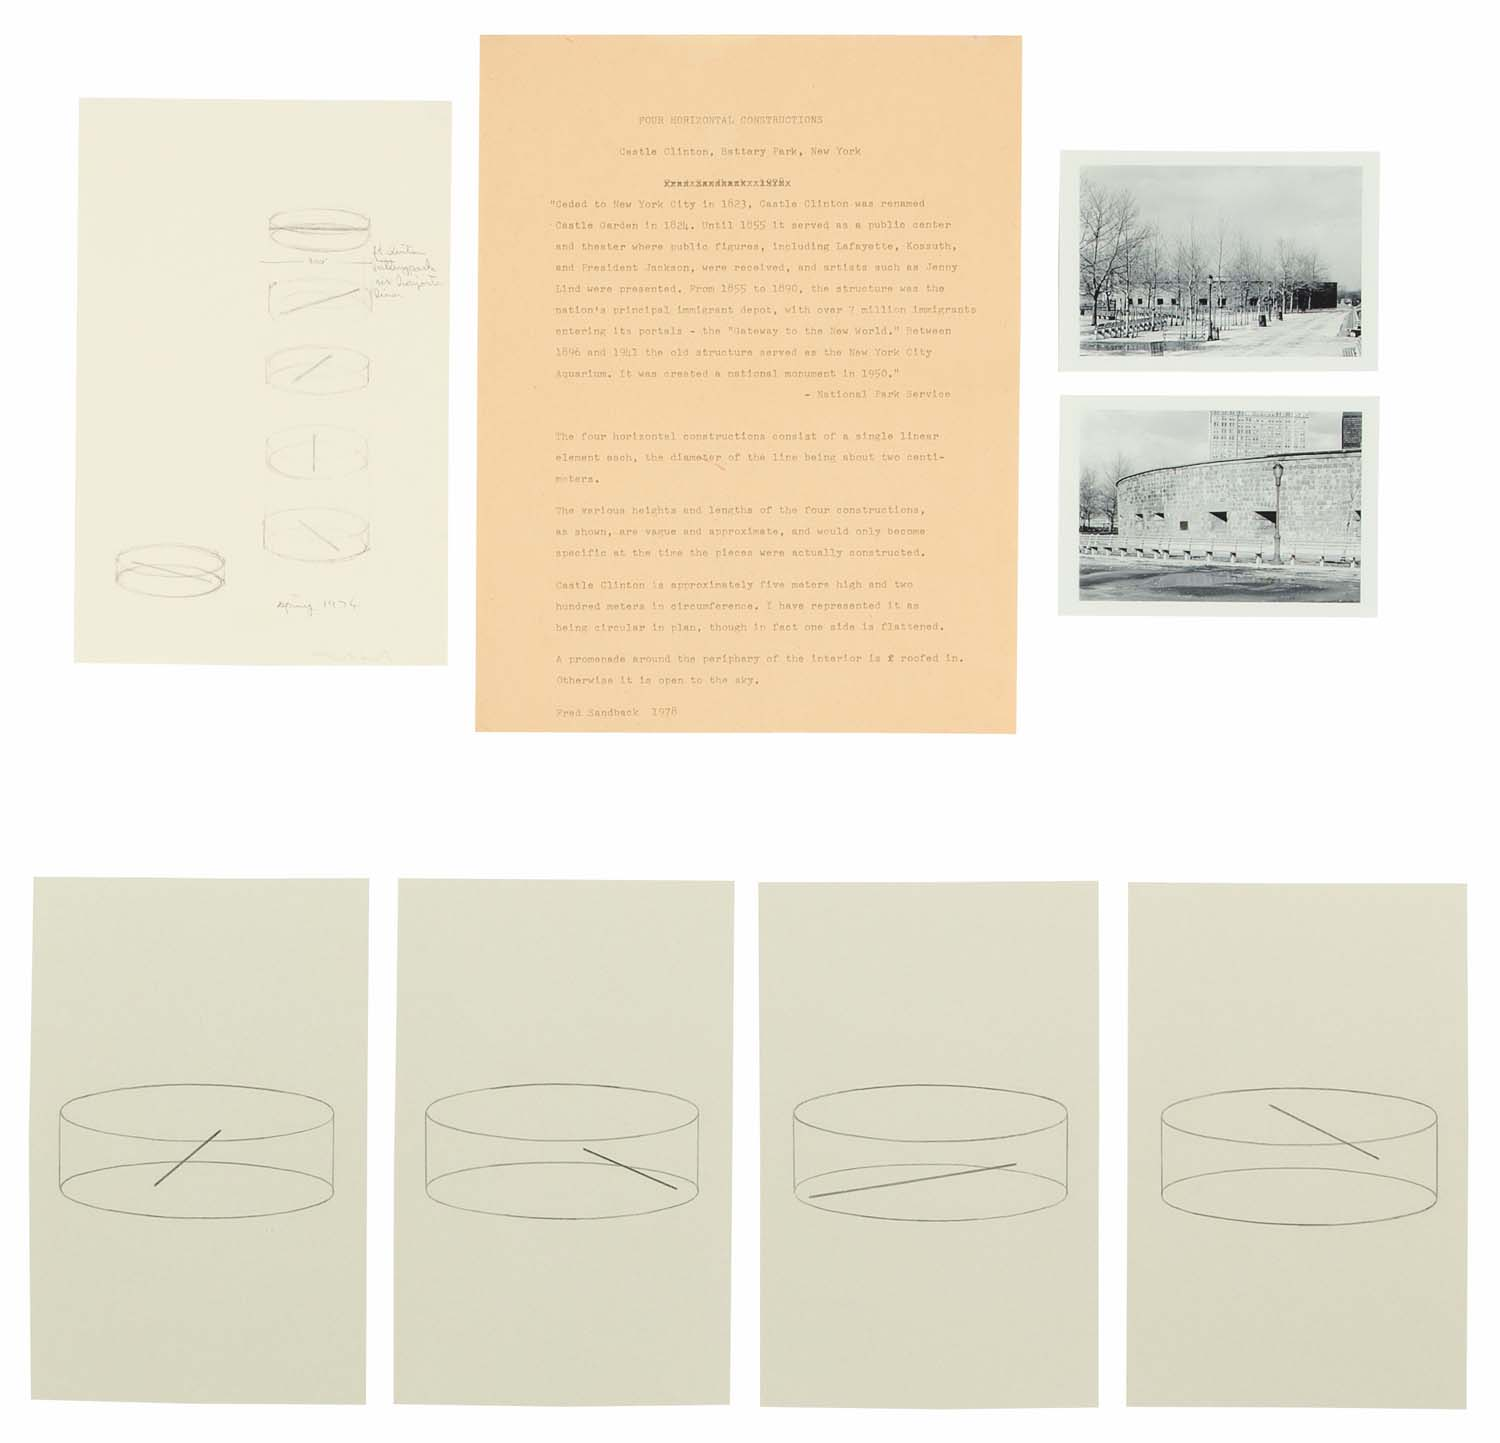 <i>Four Horizontal Constructions, Project for Castle <br/>Clinton</i>, New York, 1978